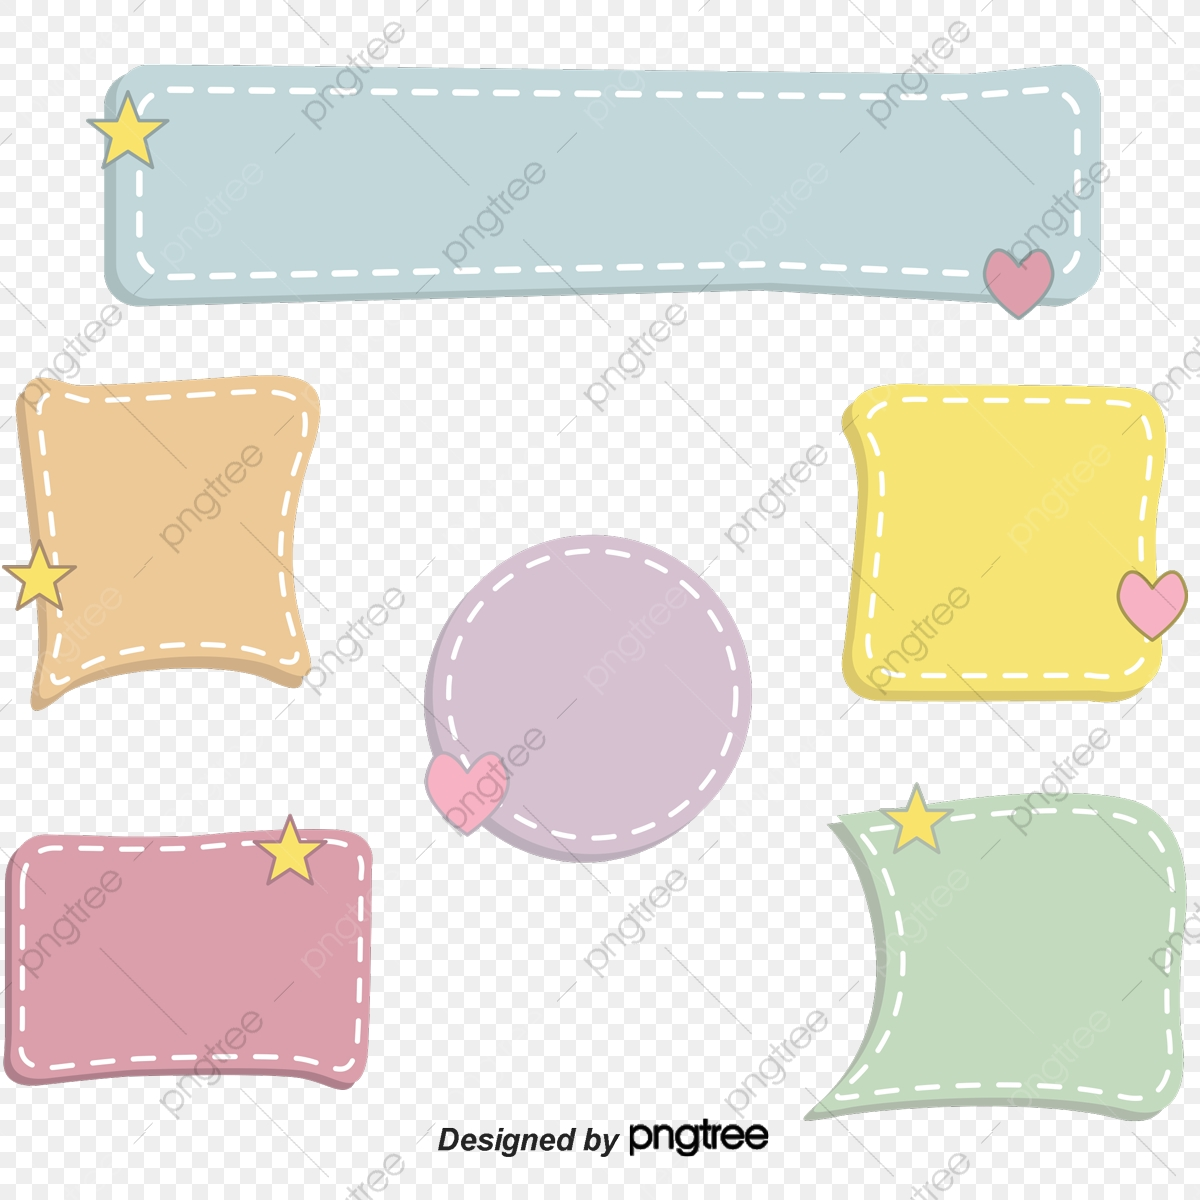 This is a graphic of Free Printable Notebook Paper regarding thin